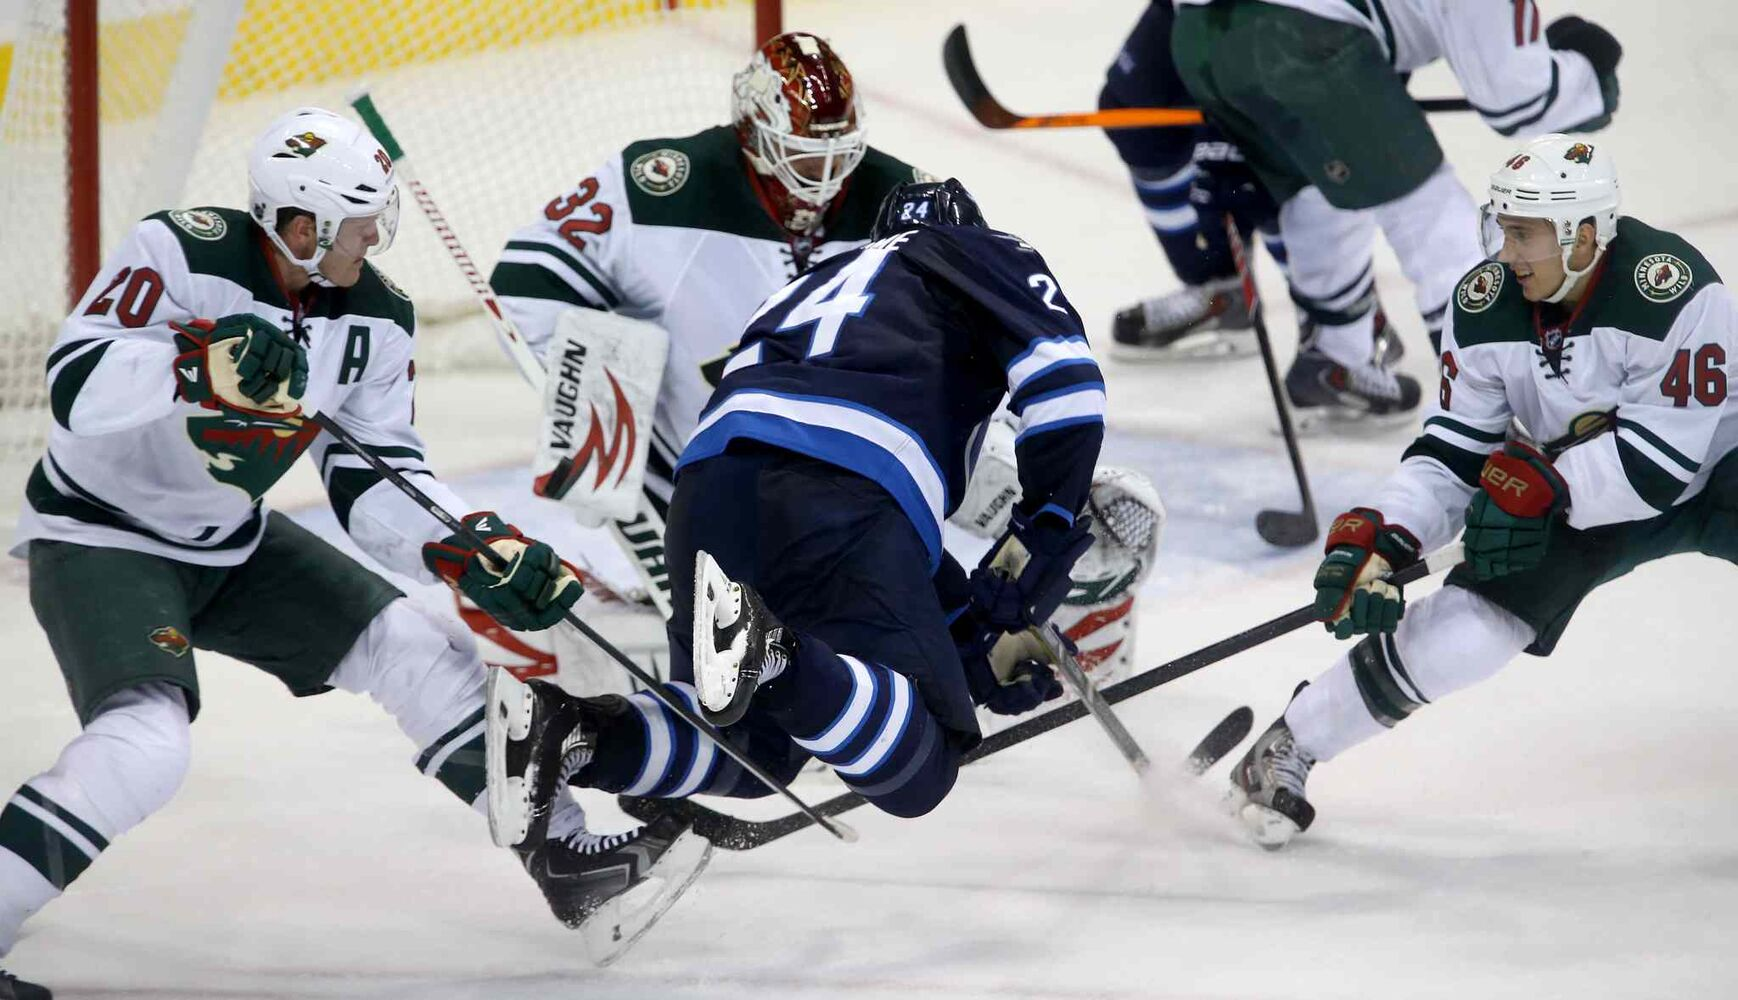 Minnesota Wild defenceman Ryan Suter (left) and Jared Spurgeon (right) trip up Winnipeg Jets defenceman Grant Clitsome during overtime. (TREVOR HAGAN / WINNIPEG FREE PRESS)